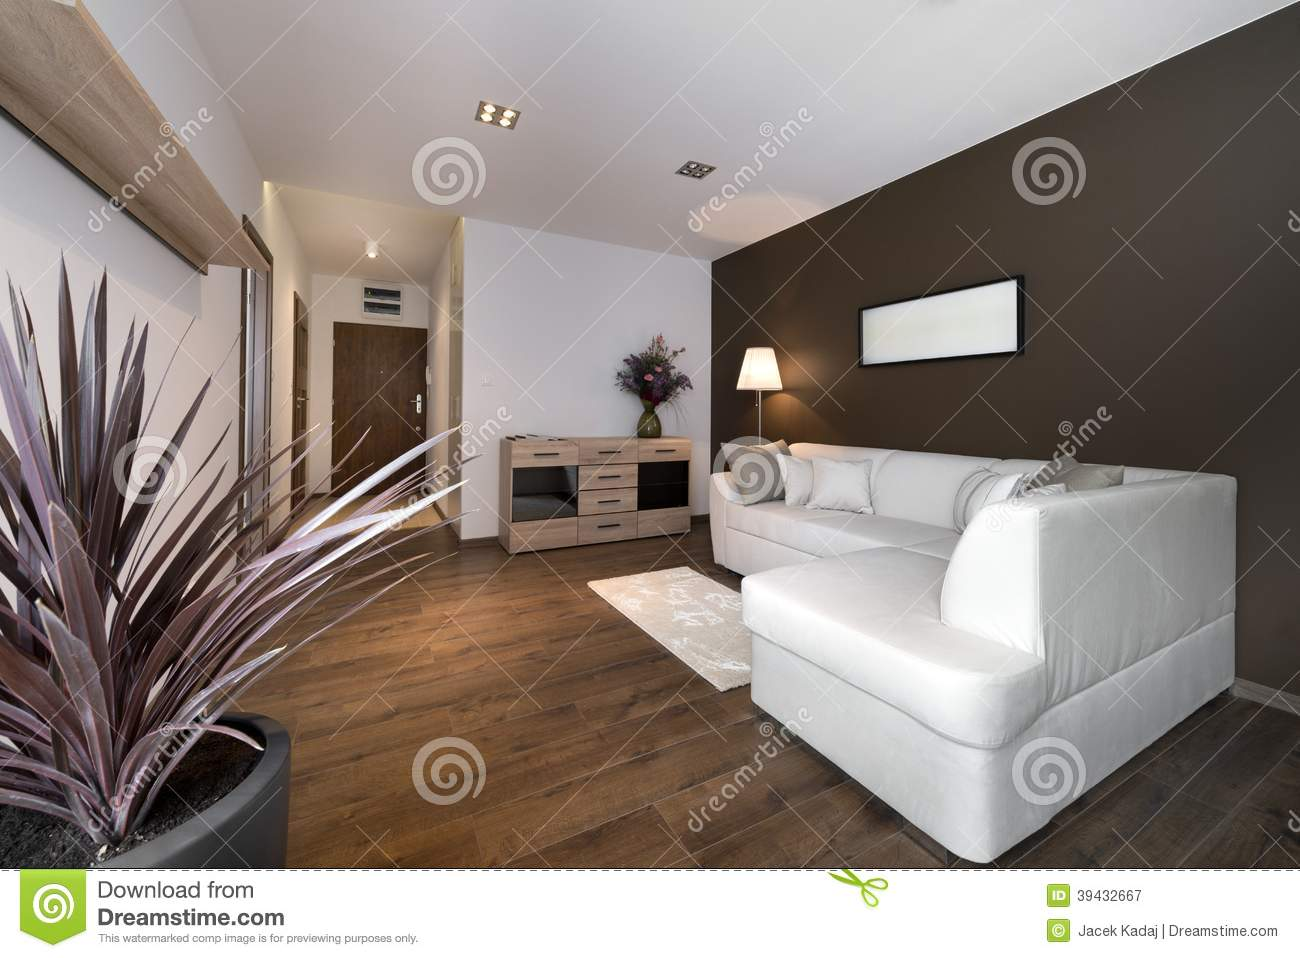 Modern Brown Interior Design Living Room Stock Photo - Image: 39432667